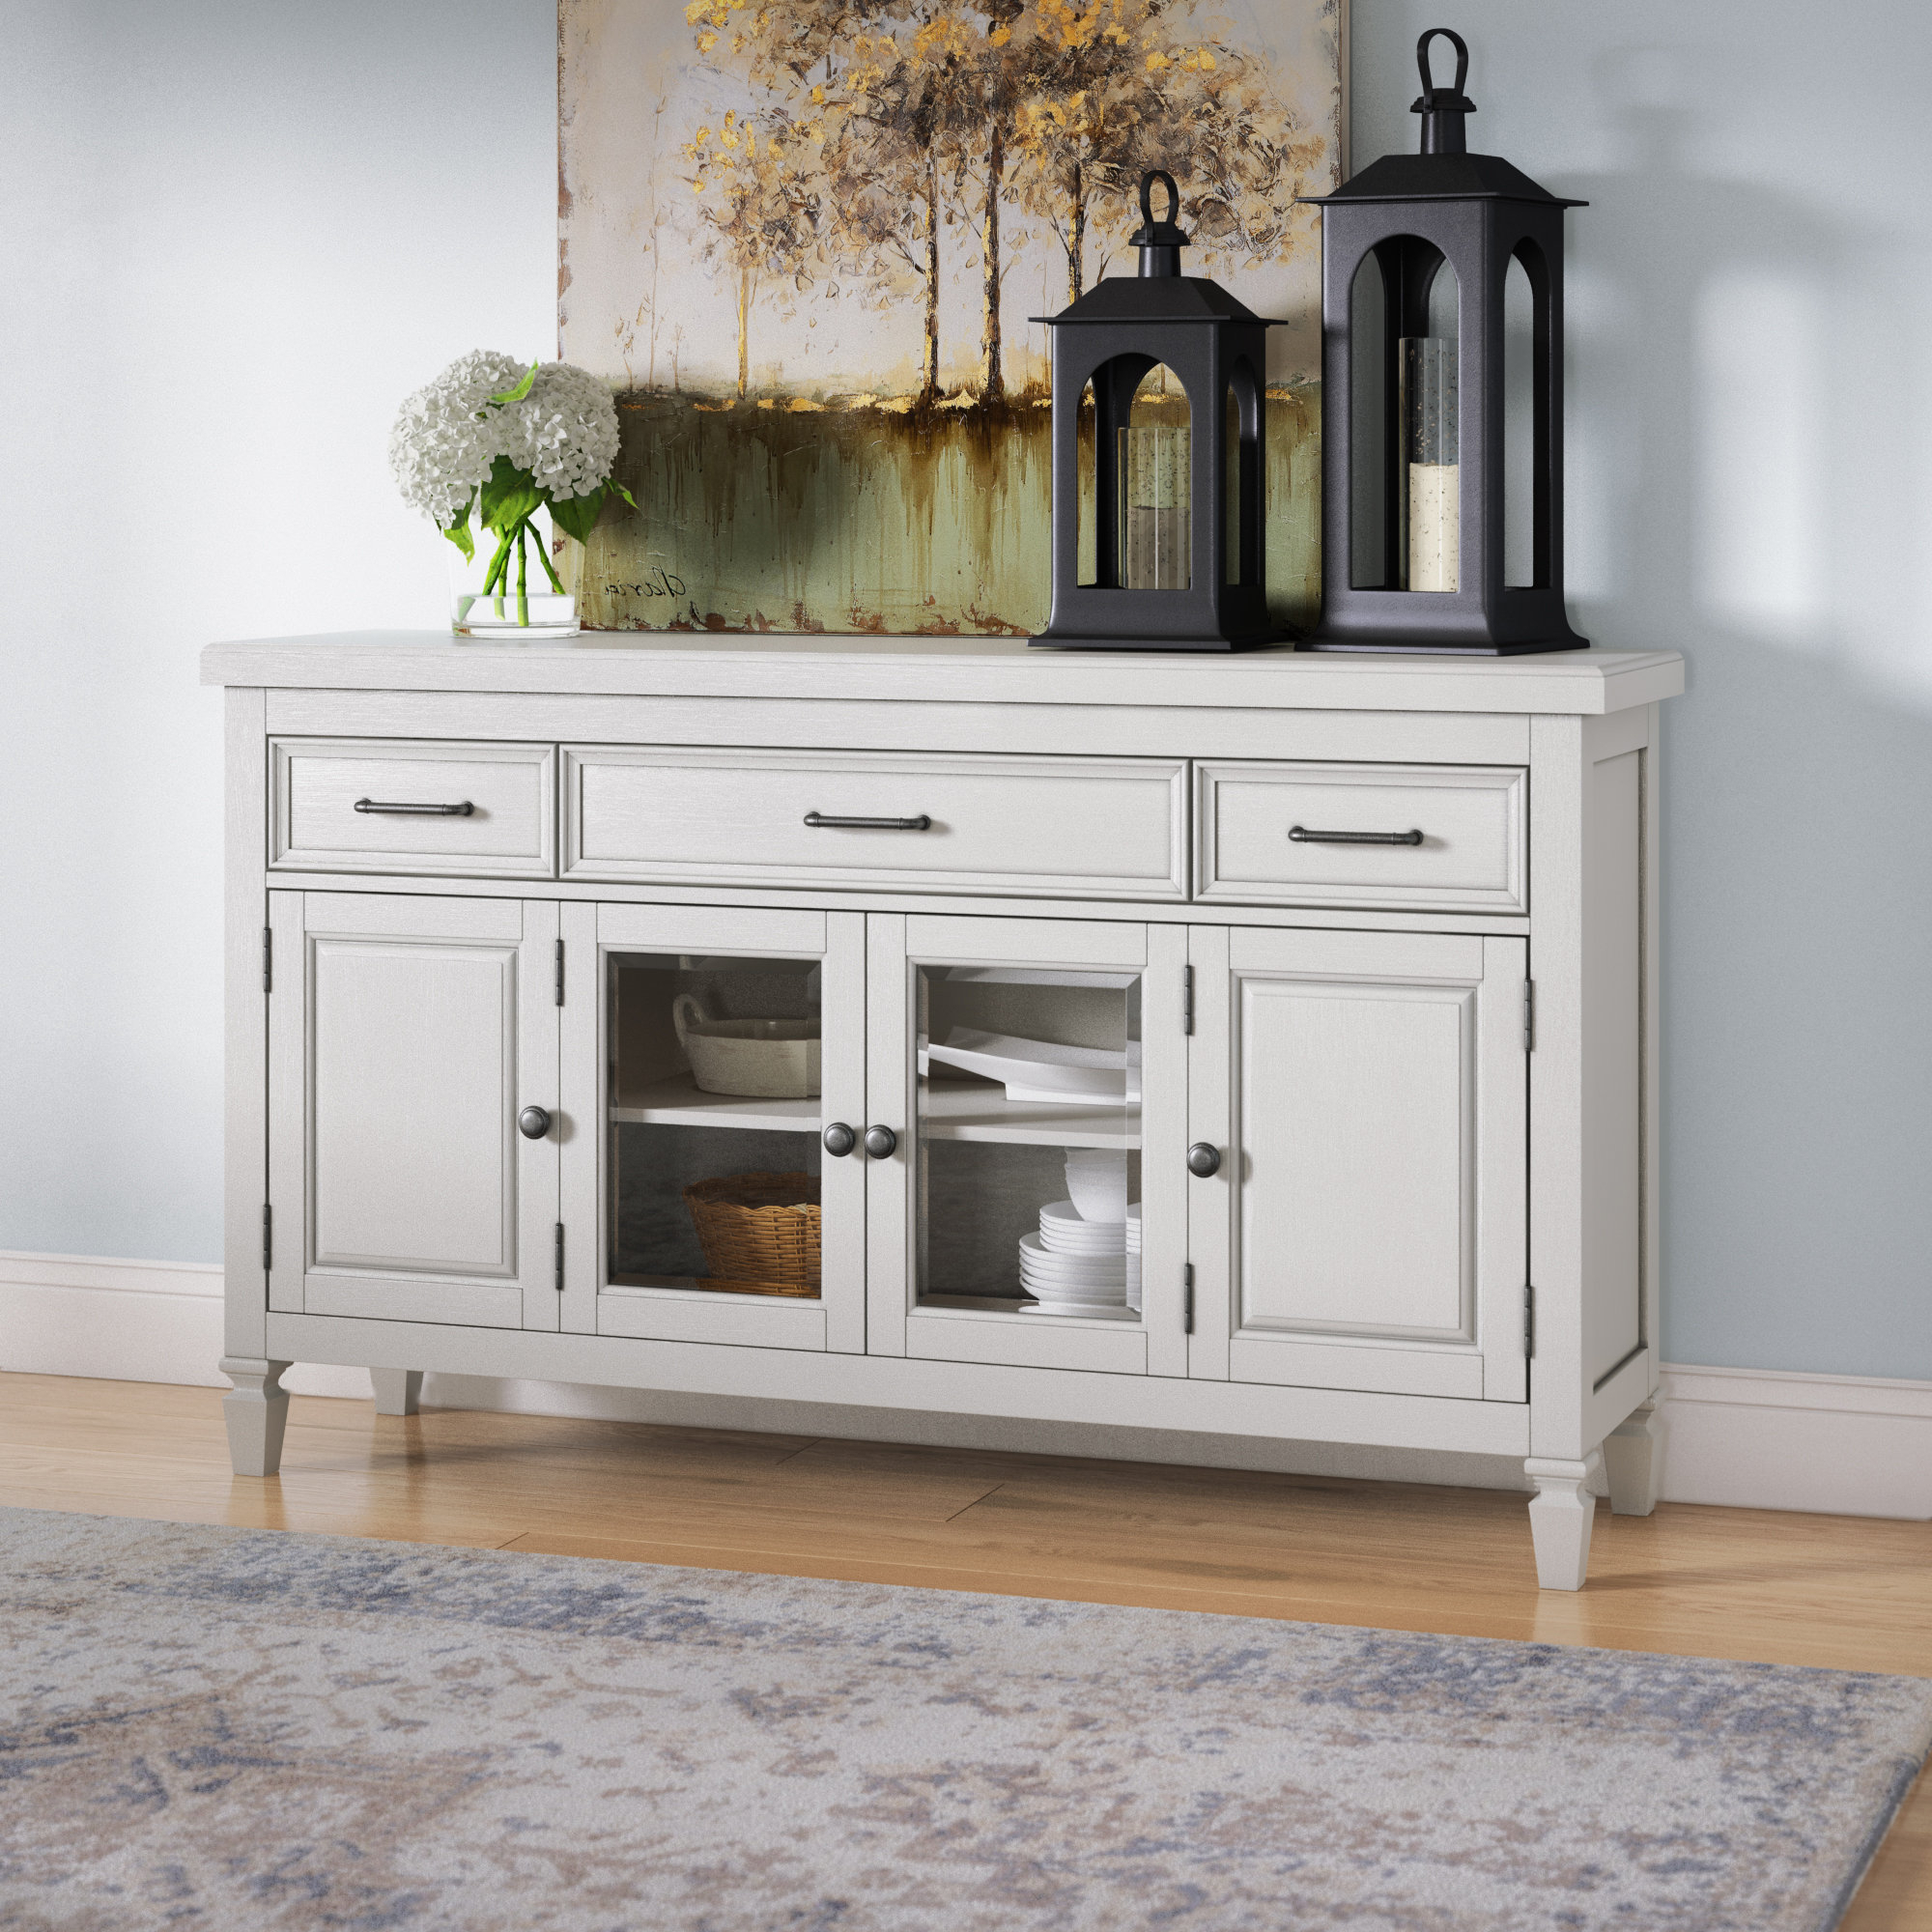 Wayfair.ca Pertaining To Most Popular Rutledge Sideboards (Gallery 7 of 20)